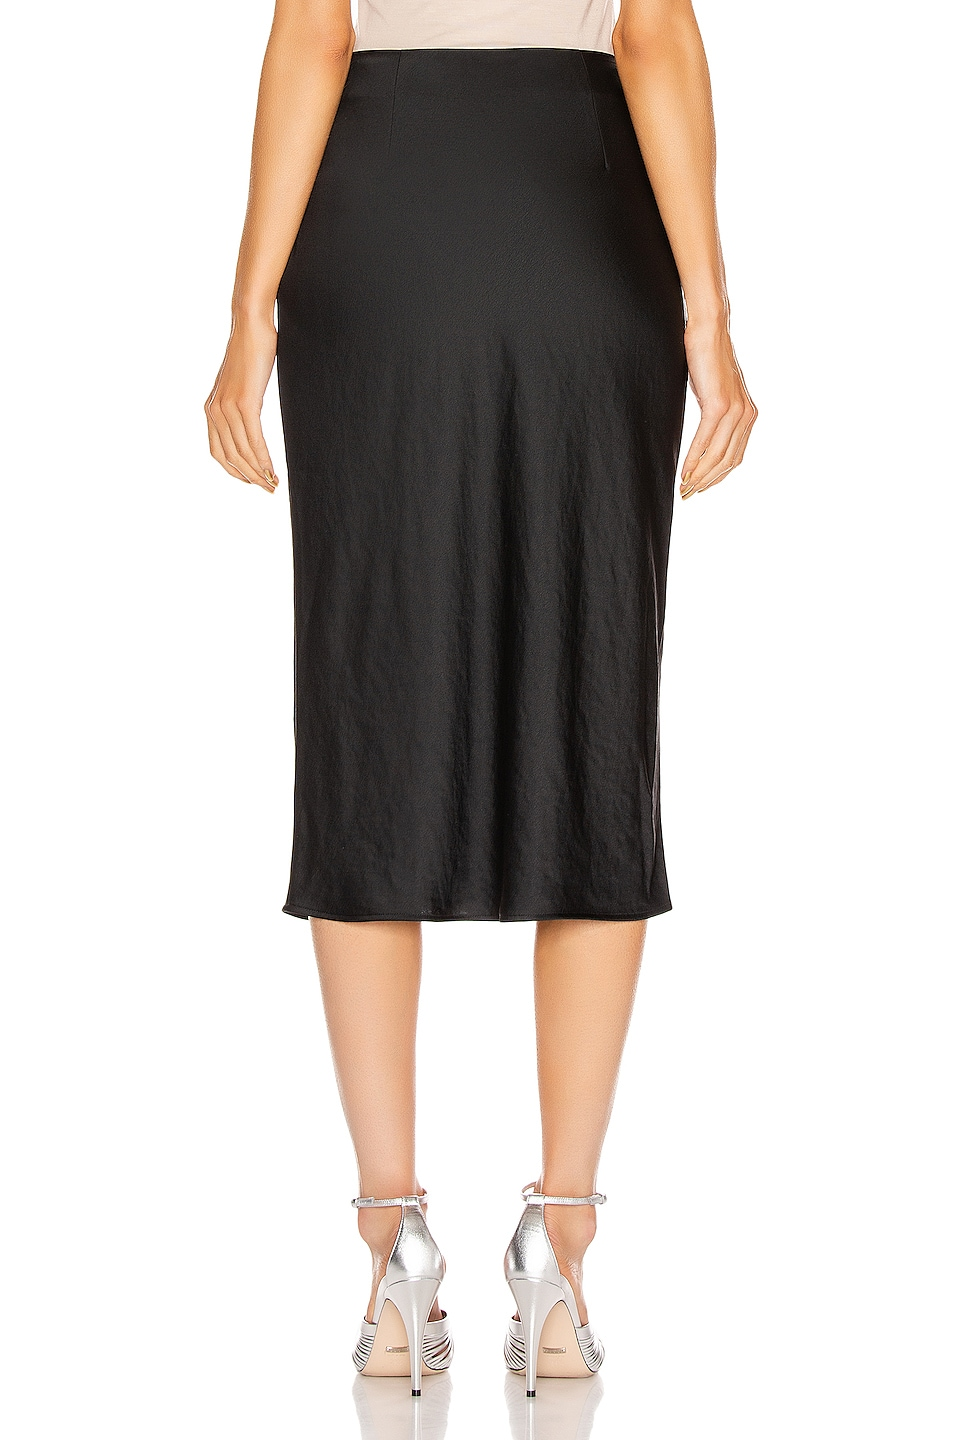 Image 3 of T by Alexander Wang Light Wash & Go Mid Skirt in Black